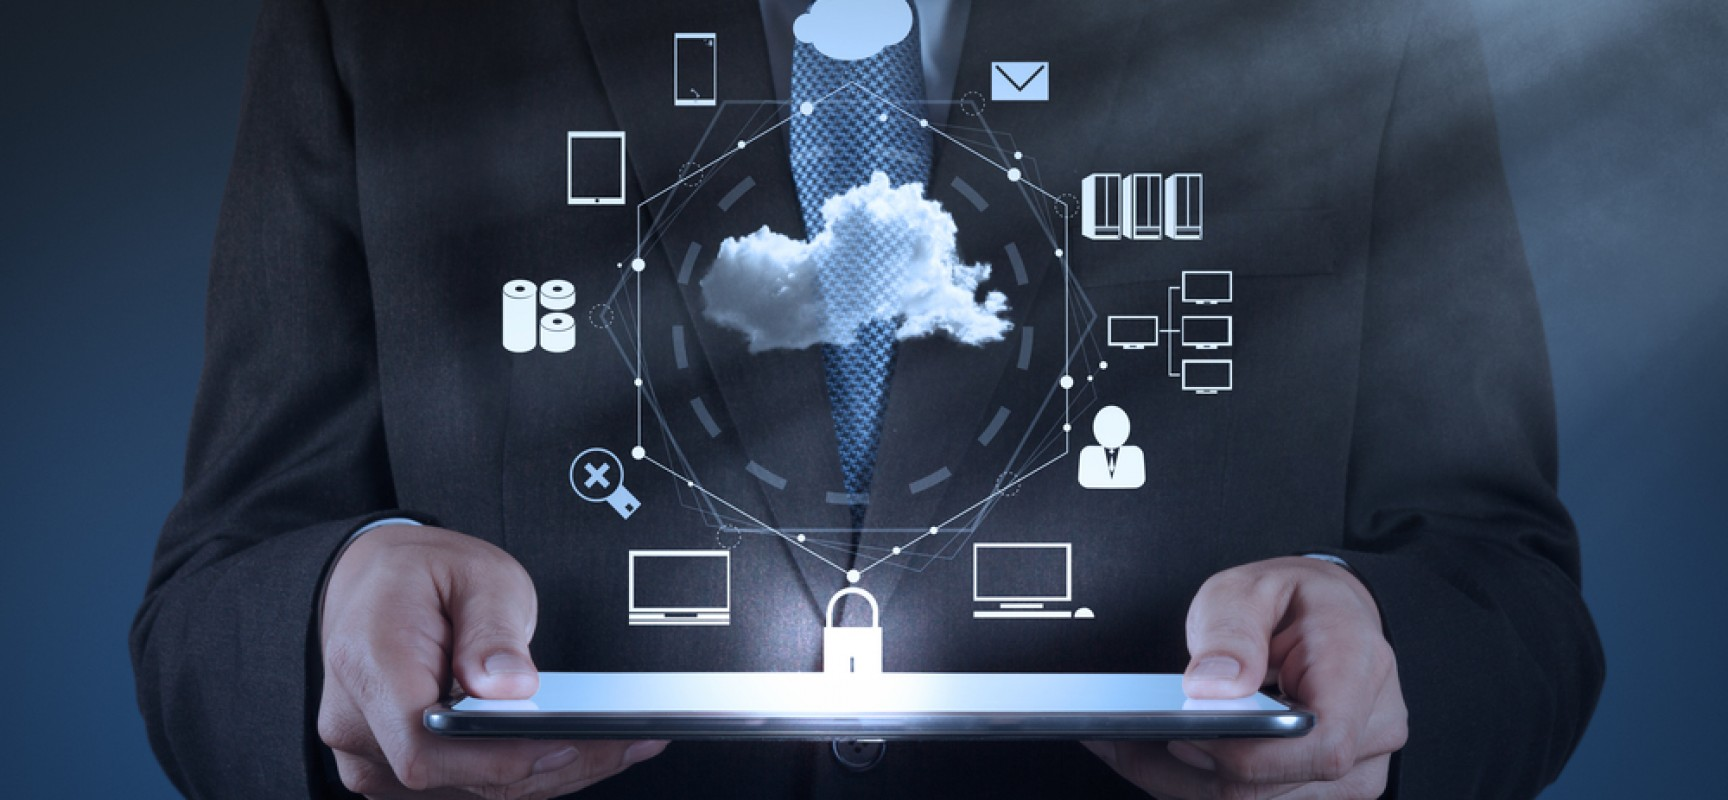 Using Cloud Services Helps Increasing The Productivity Of Employees